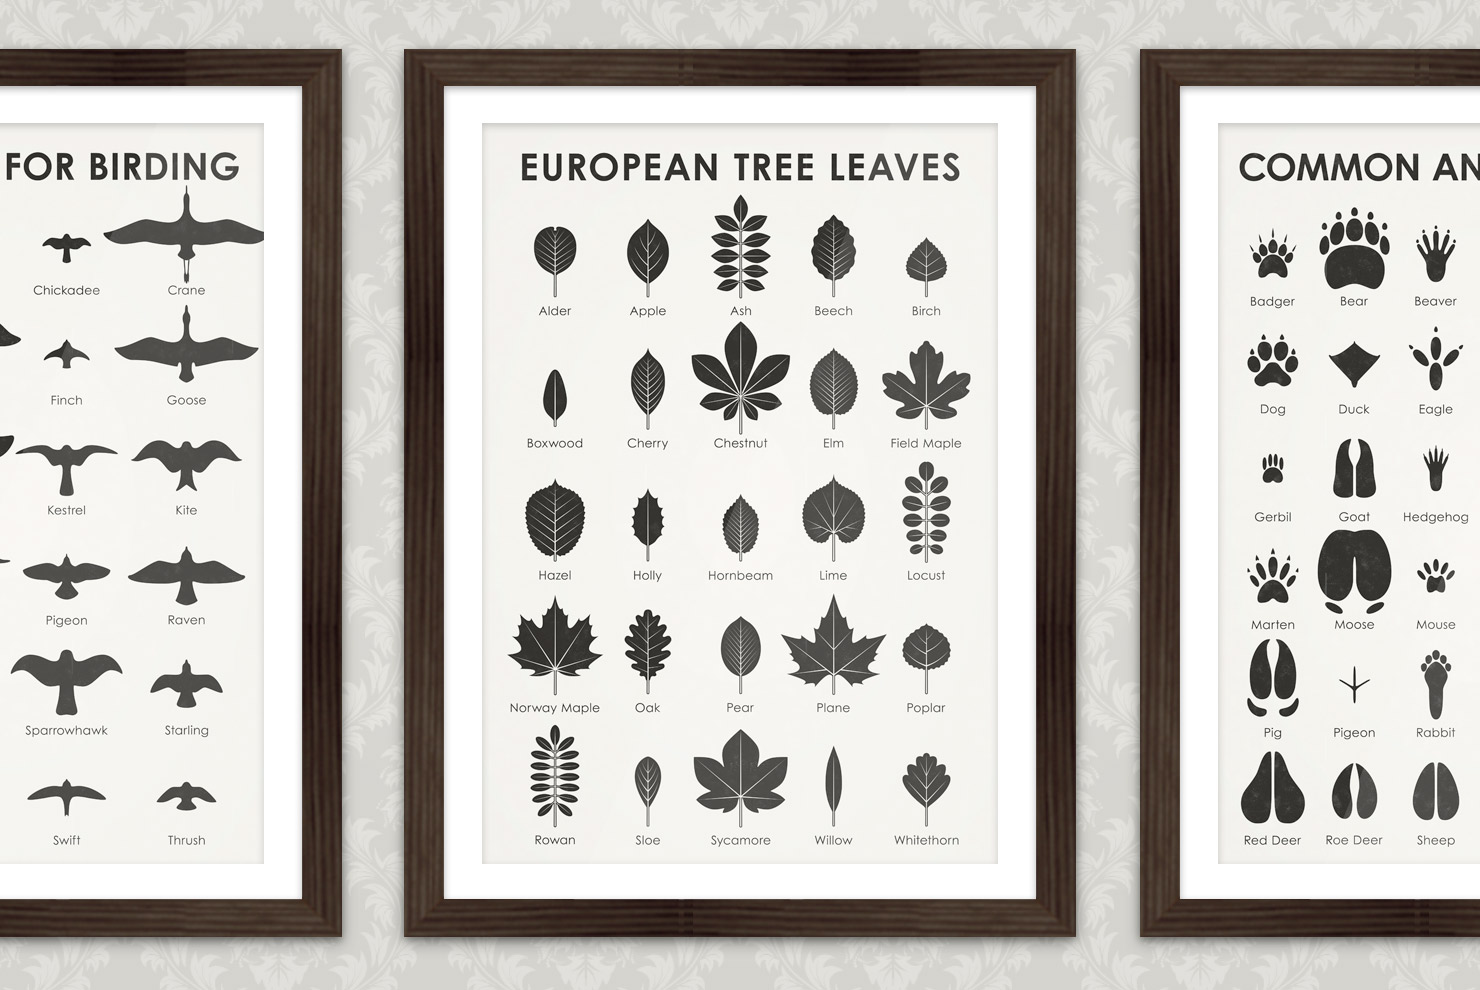 Poster with an infographic as identification sheet for the leaves of European trees such as alder, apple, ash, beech, birch, boxwood, cherry, chestnut, elm, field maple, hazel, holly, hornbeam, lime, locust, norway maple, oak, pear, plane, poplar, rowan, sloe, sycamore, willow, whitethorn